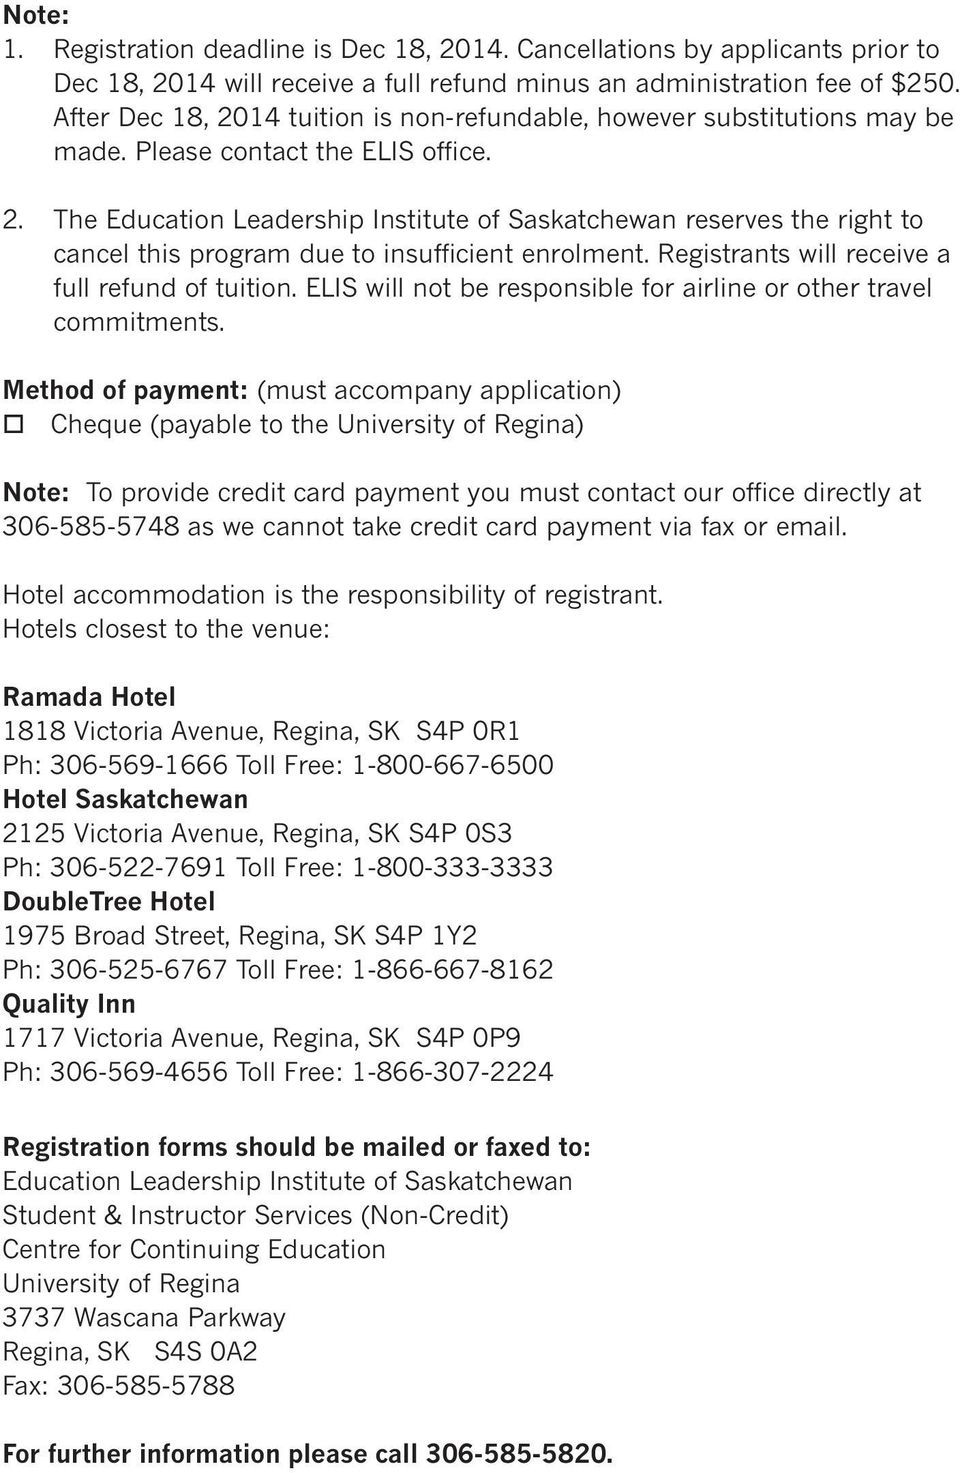 Registrants will receive a full refund of tuition. ELIS will not be responsible for airline or other travel commitments.